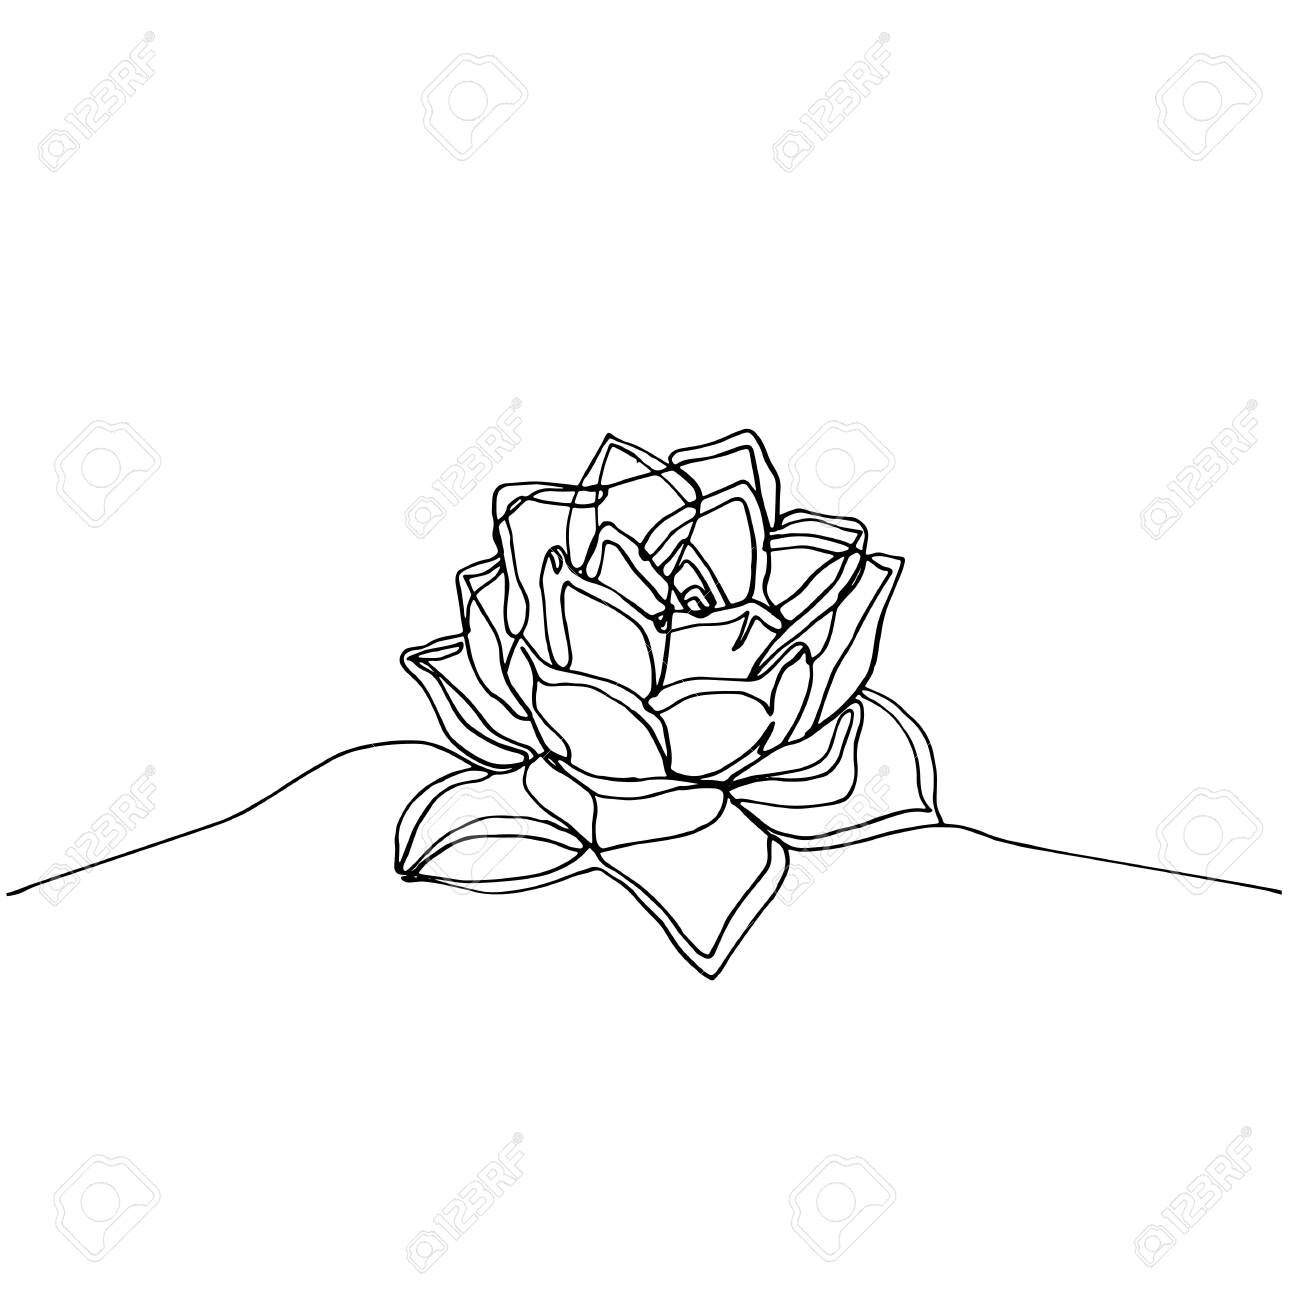 Hand Drawn Minimalistic Succulent One Single Continuous Black Royalty Free Cliparts Vectors And Stock Illustration Image 123423247